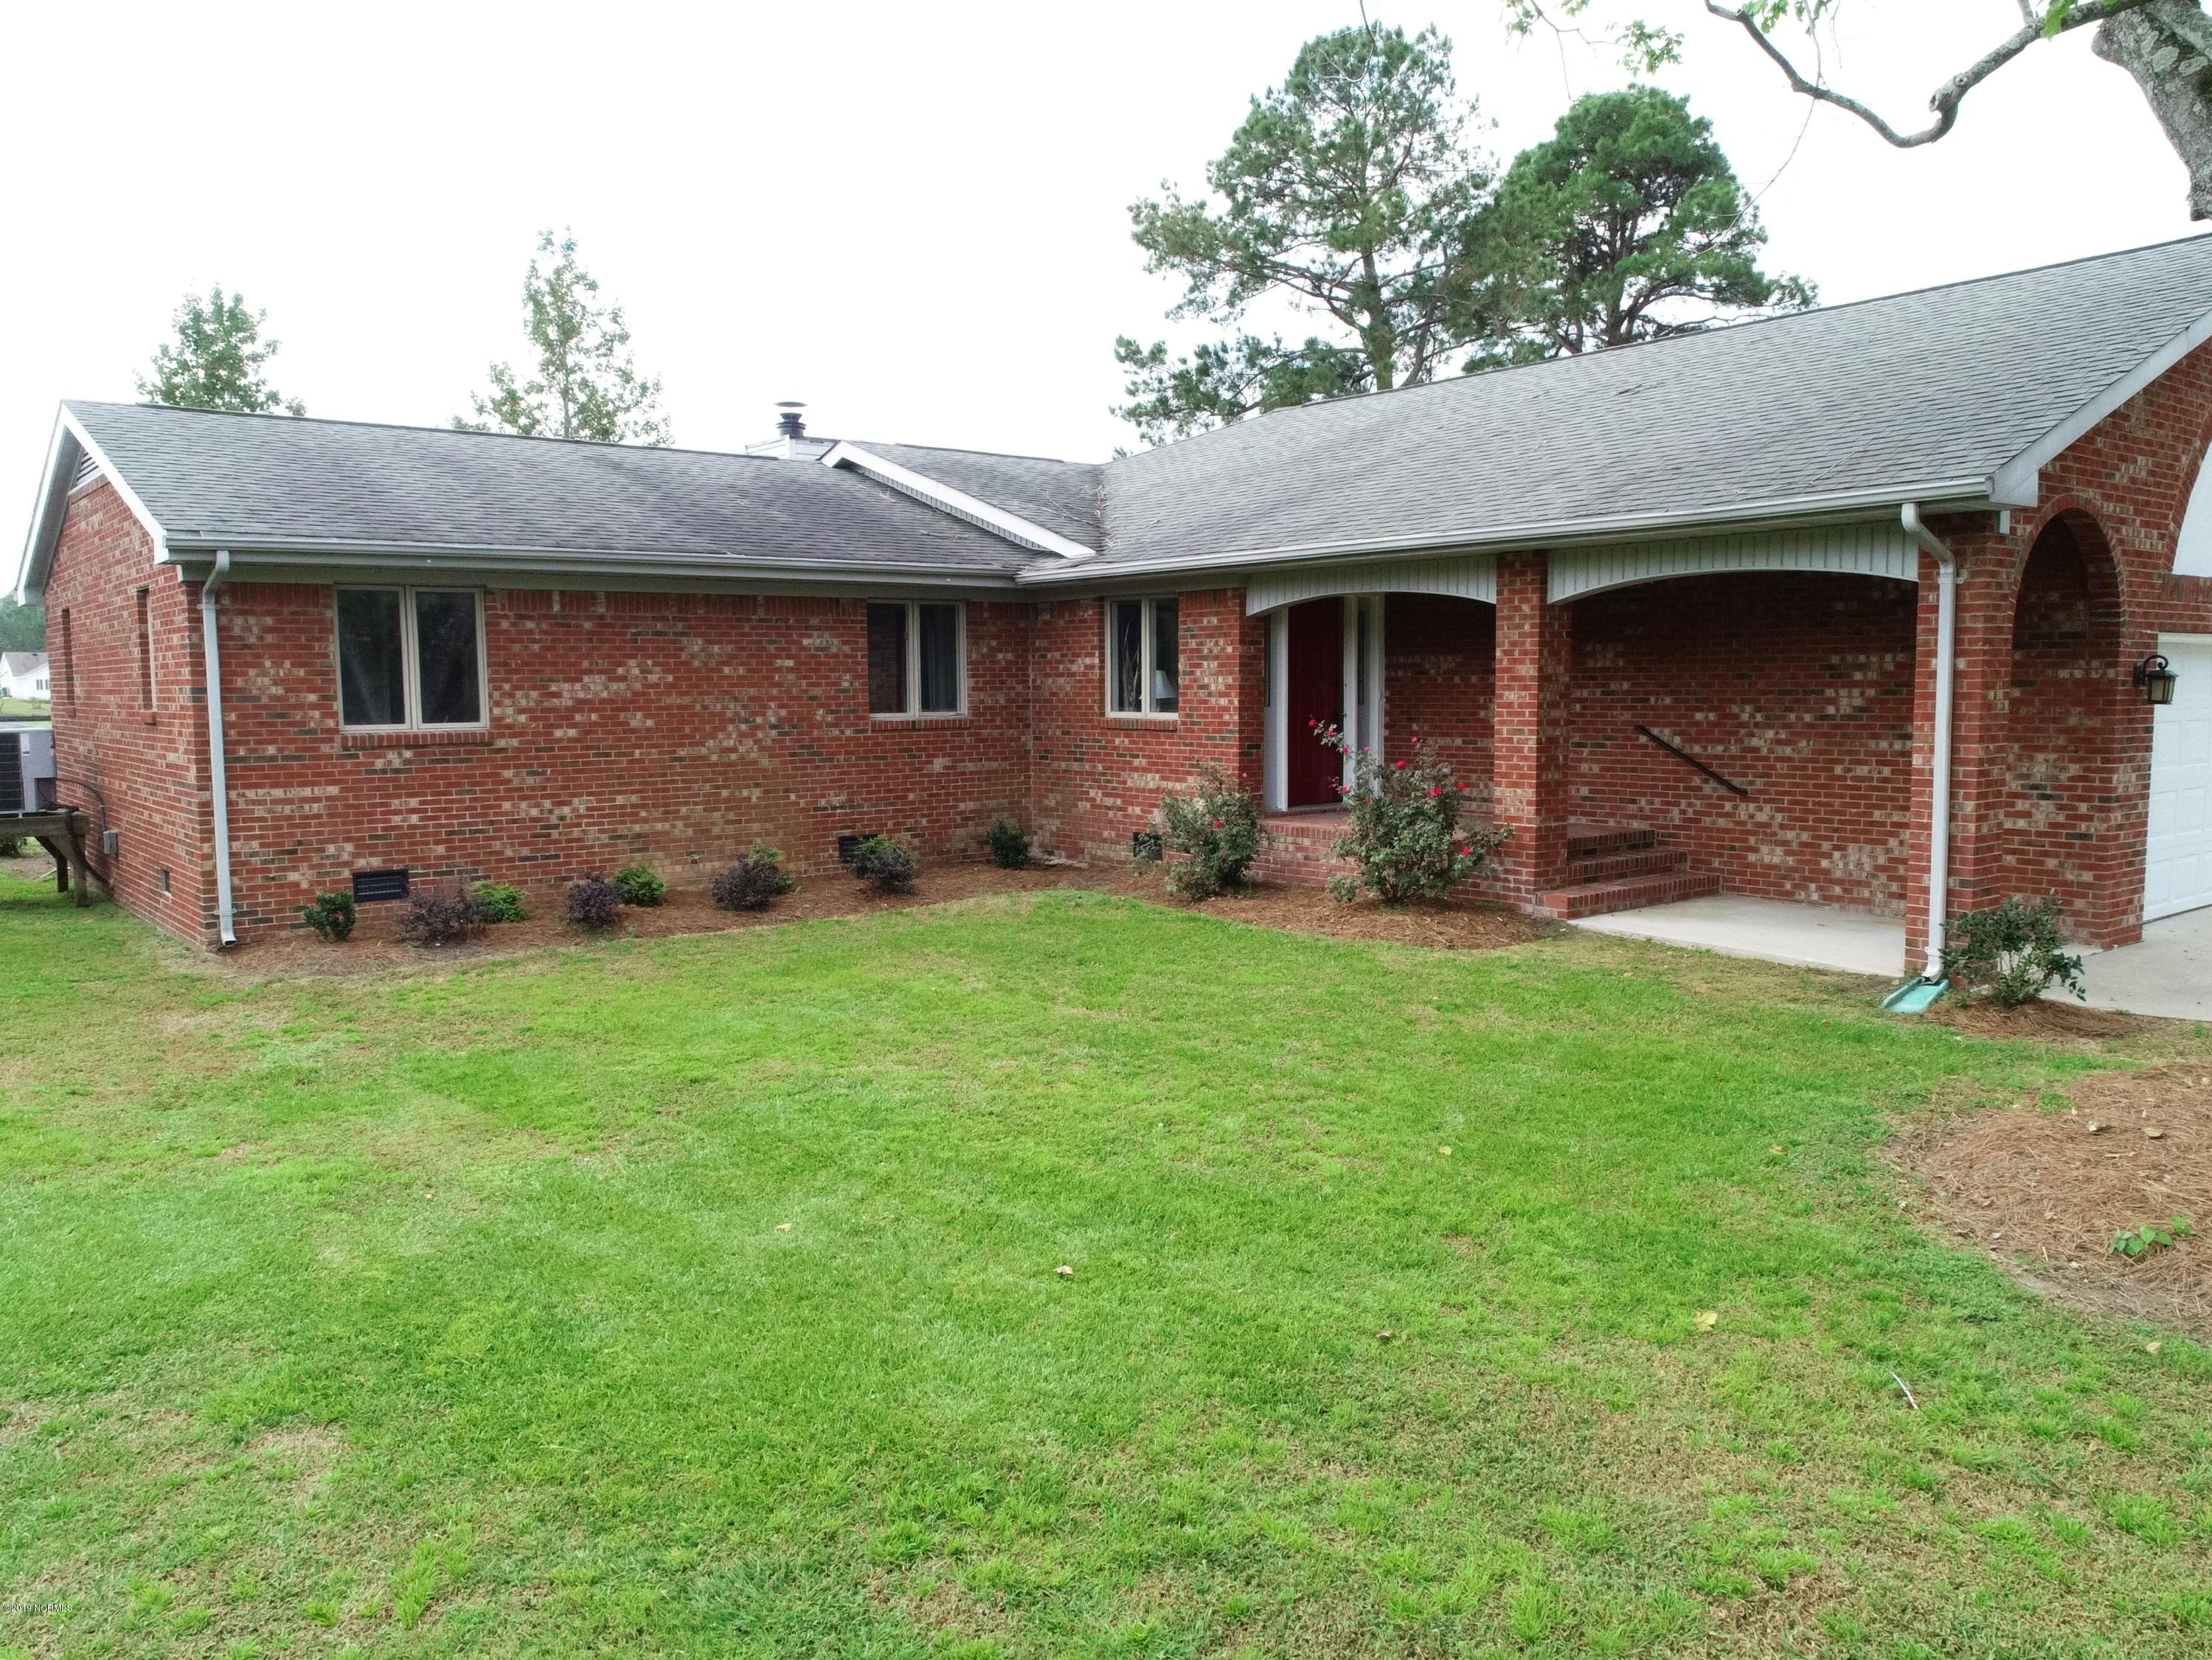 Property for sale at 828 Pelican Drive, New Bern,  North Carolina 28560